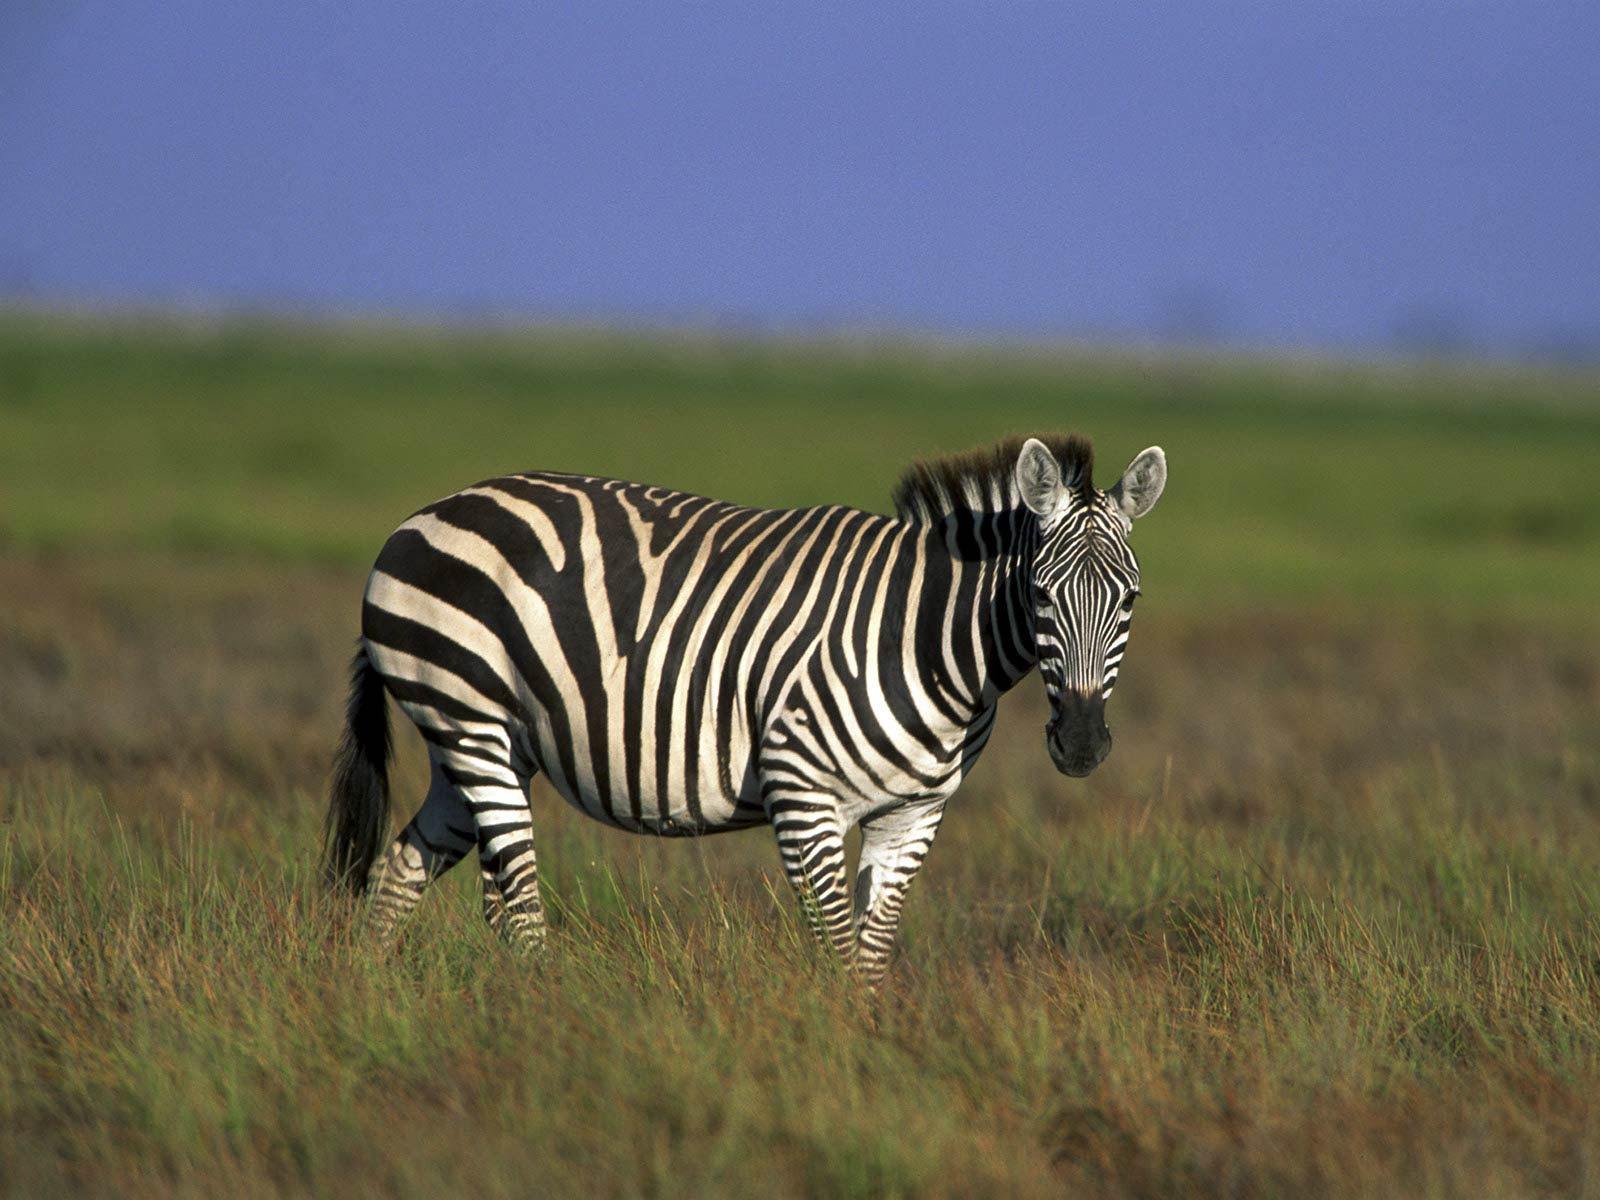 zebra wallpaper - animals town